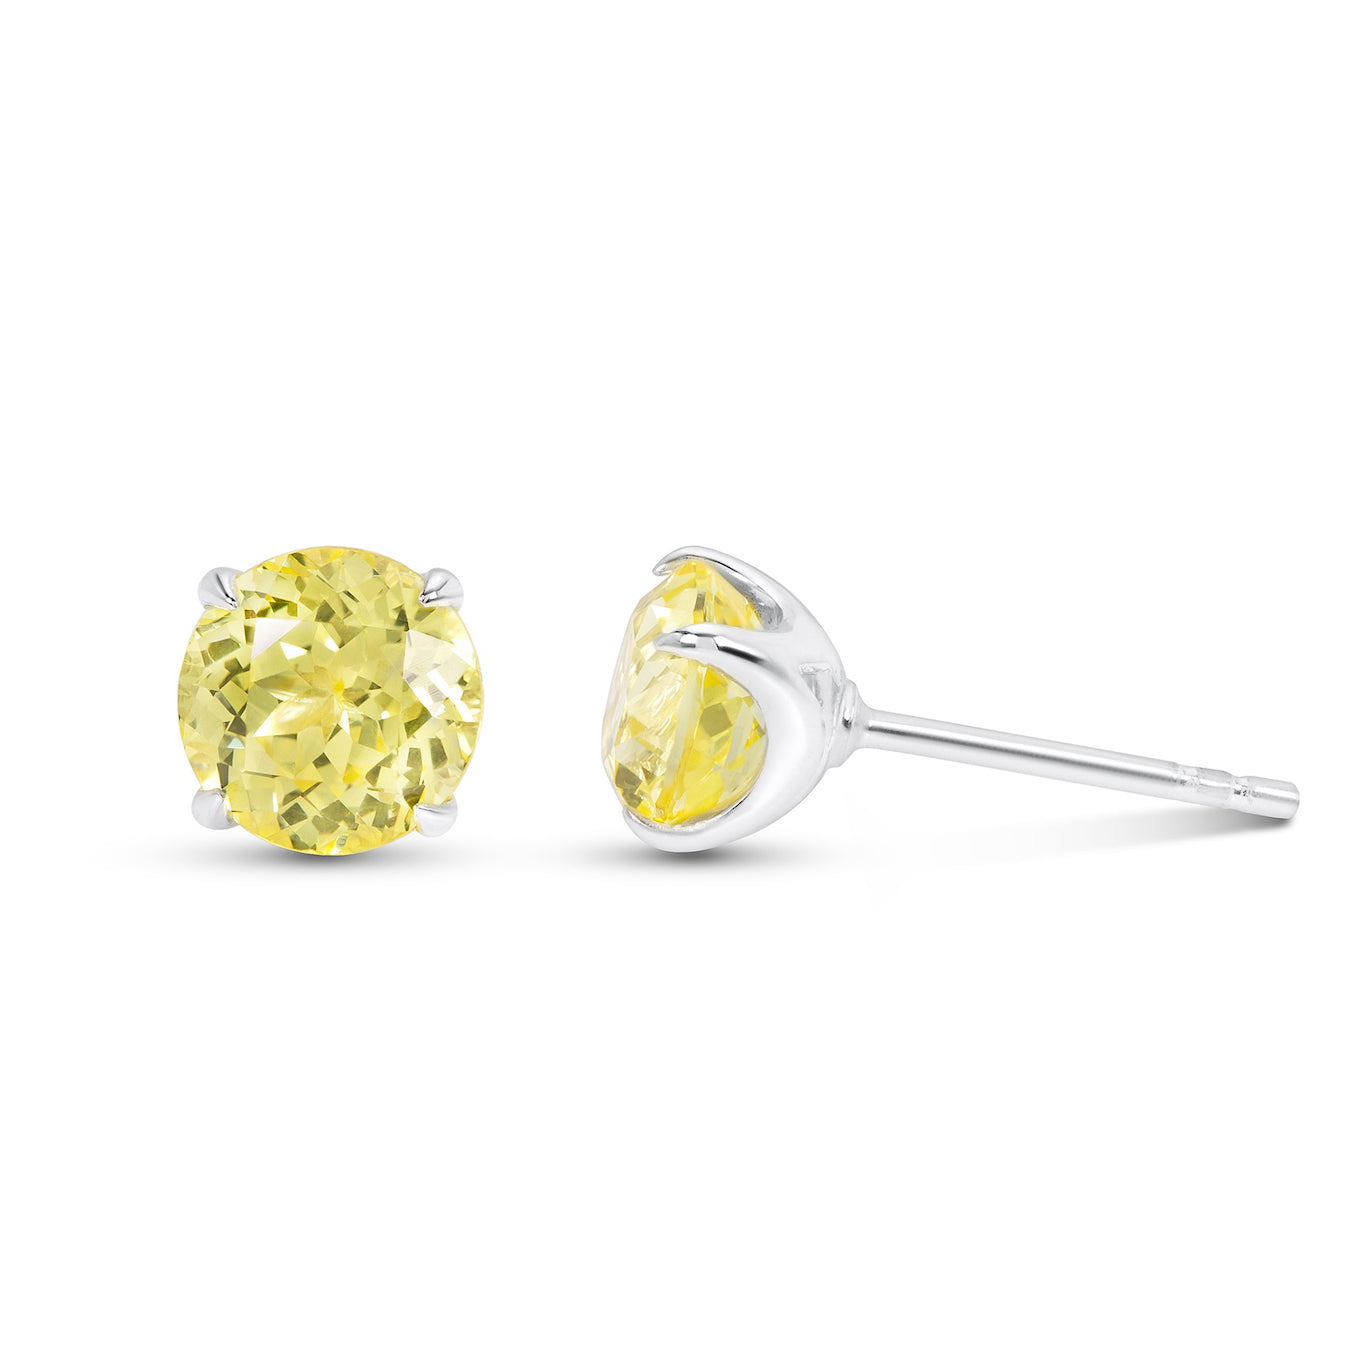 master harmonizing sale yellow sapphire earrings in jewelry j for at id drop